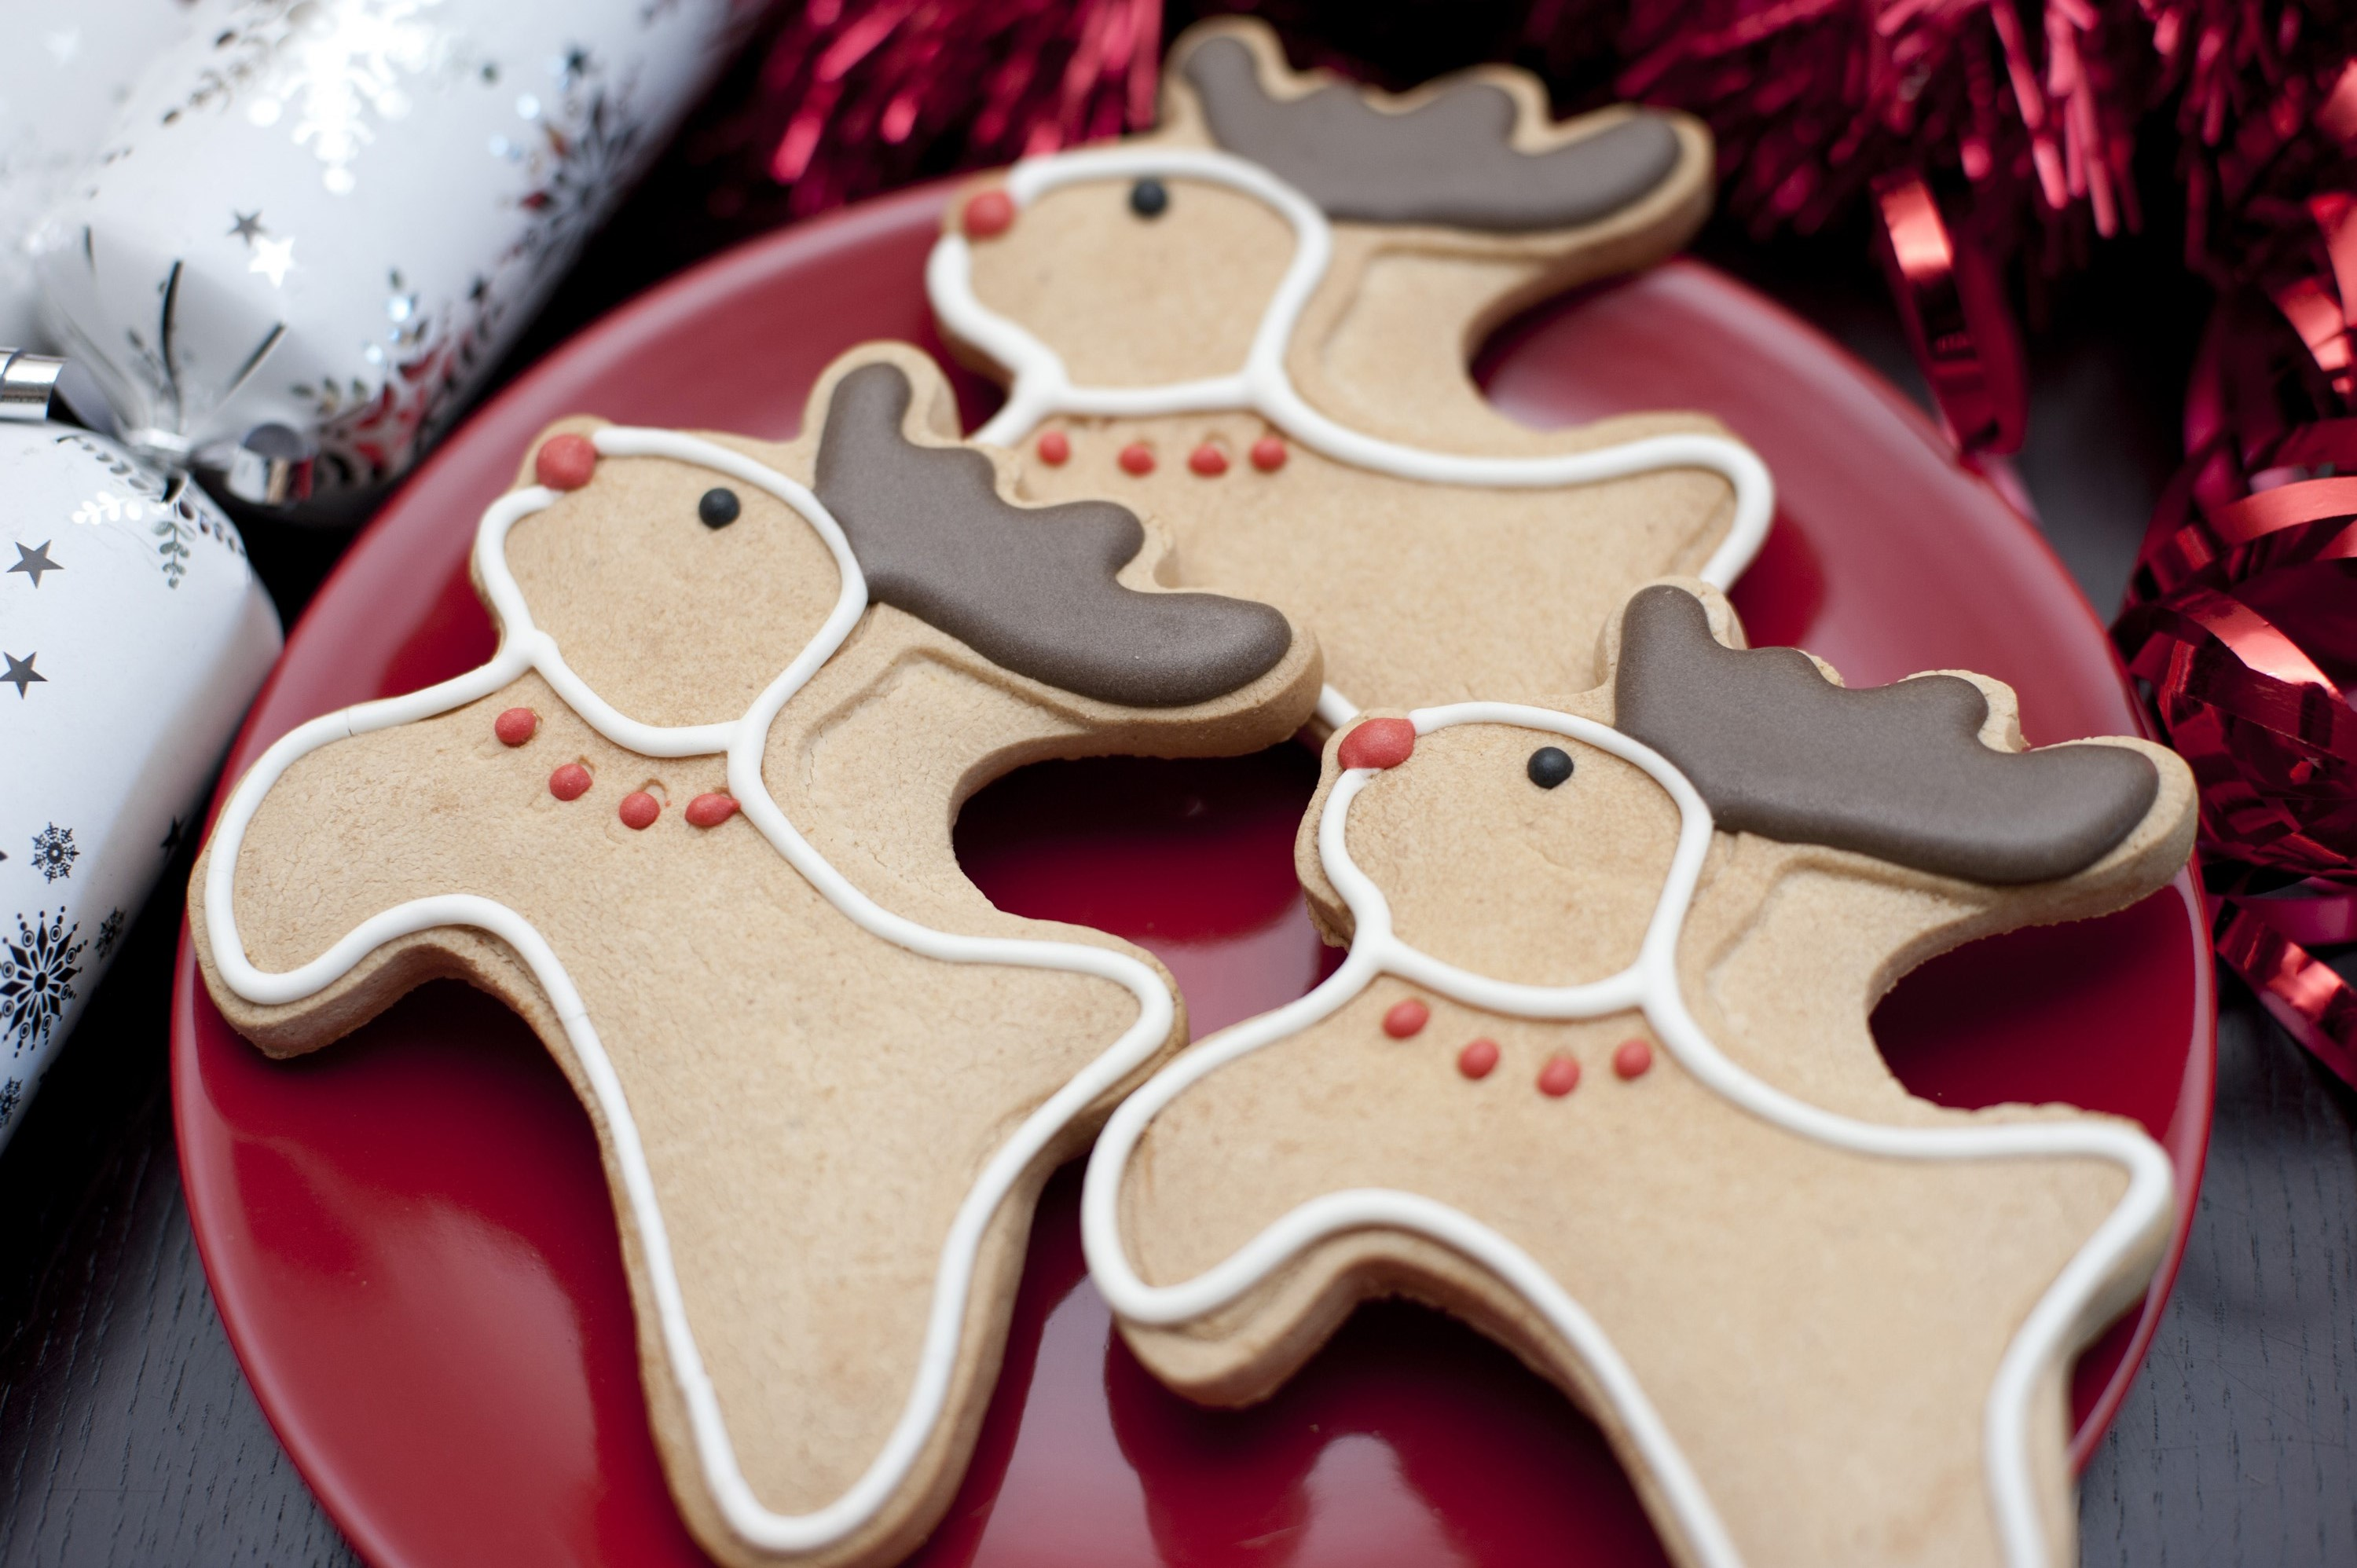 Christmas reindeer gingerbread cookies decorated with red collars and noses and chocolate antlers for a fun Christmas teatime treat